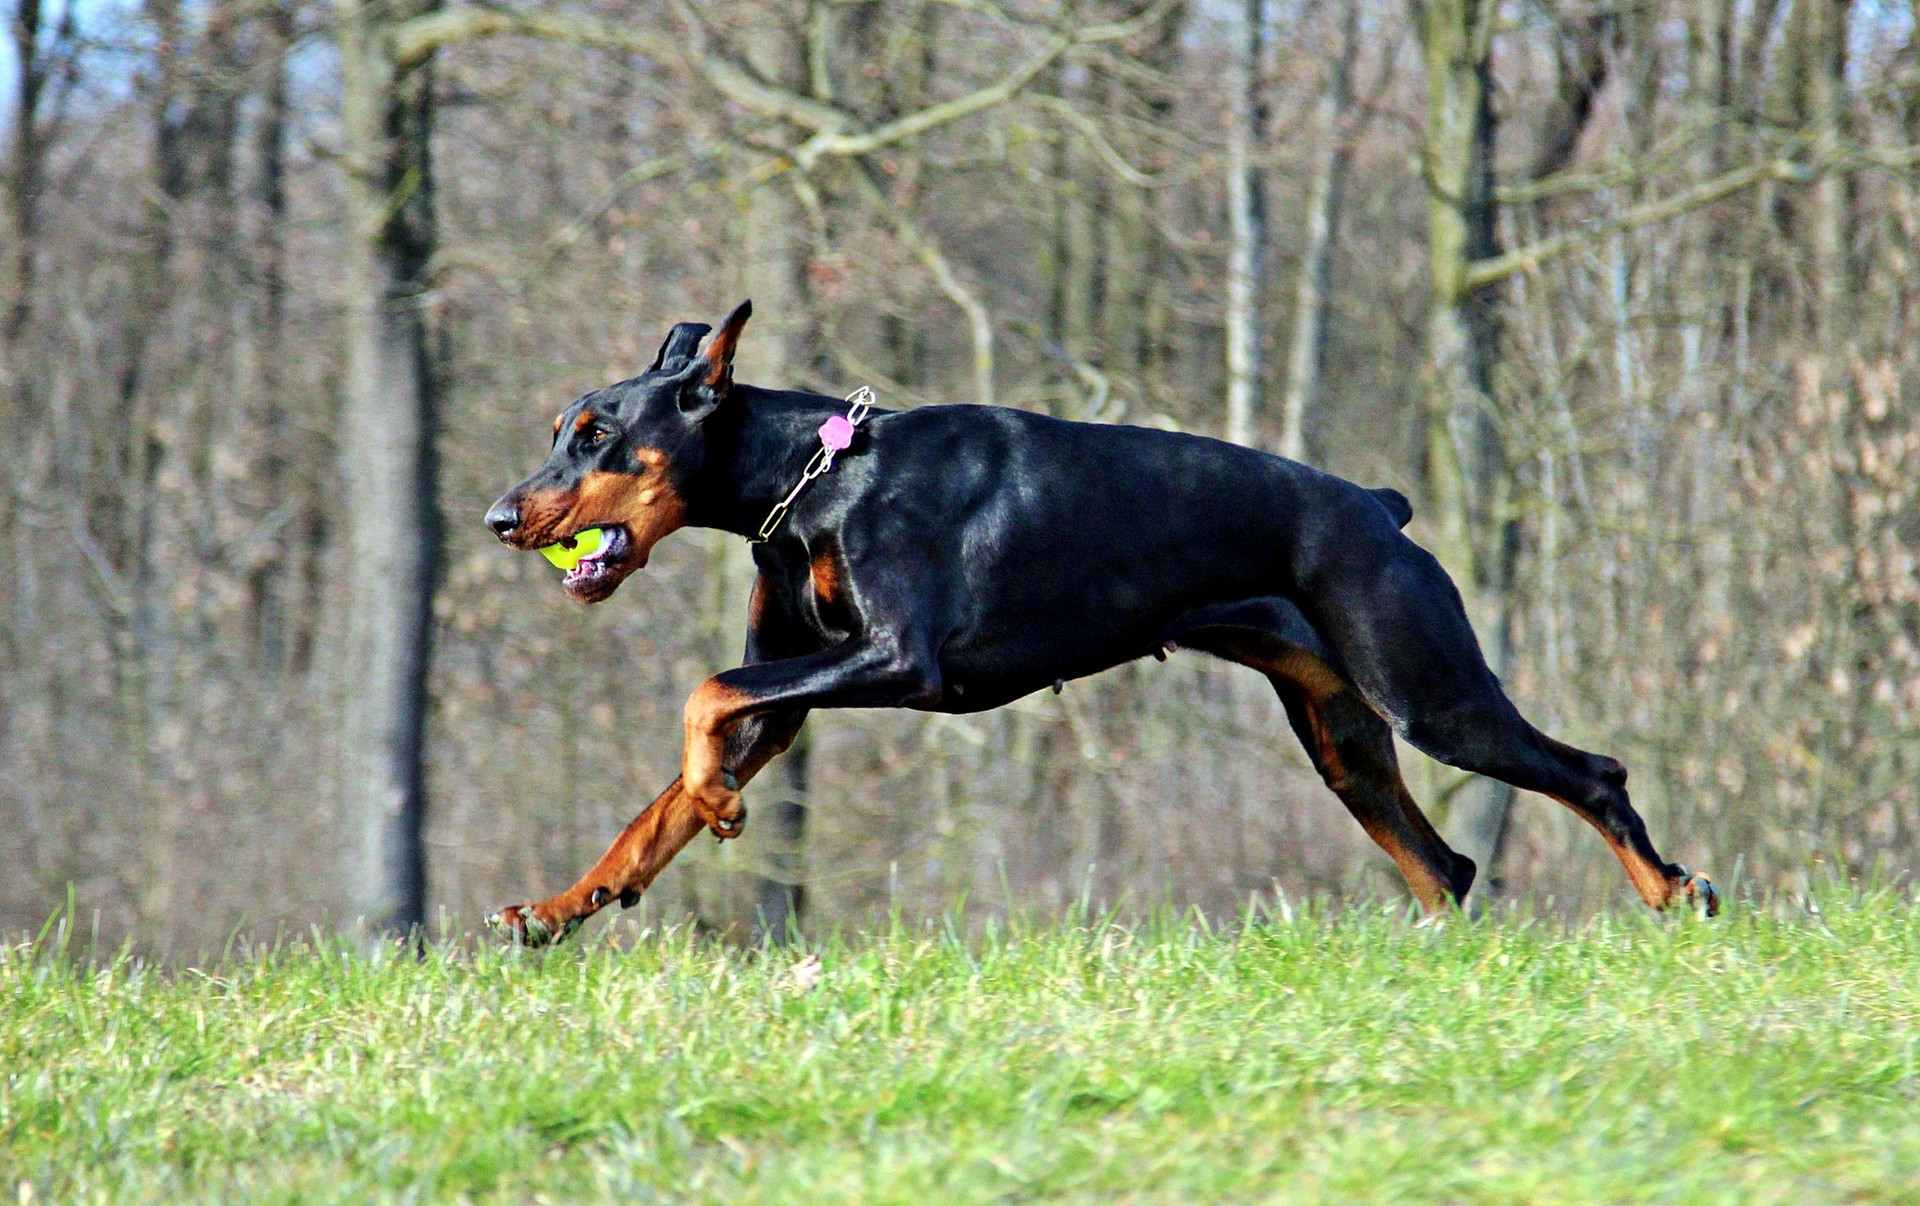 game-running-dog-mammal-outdoors-vertebr